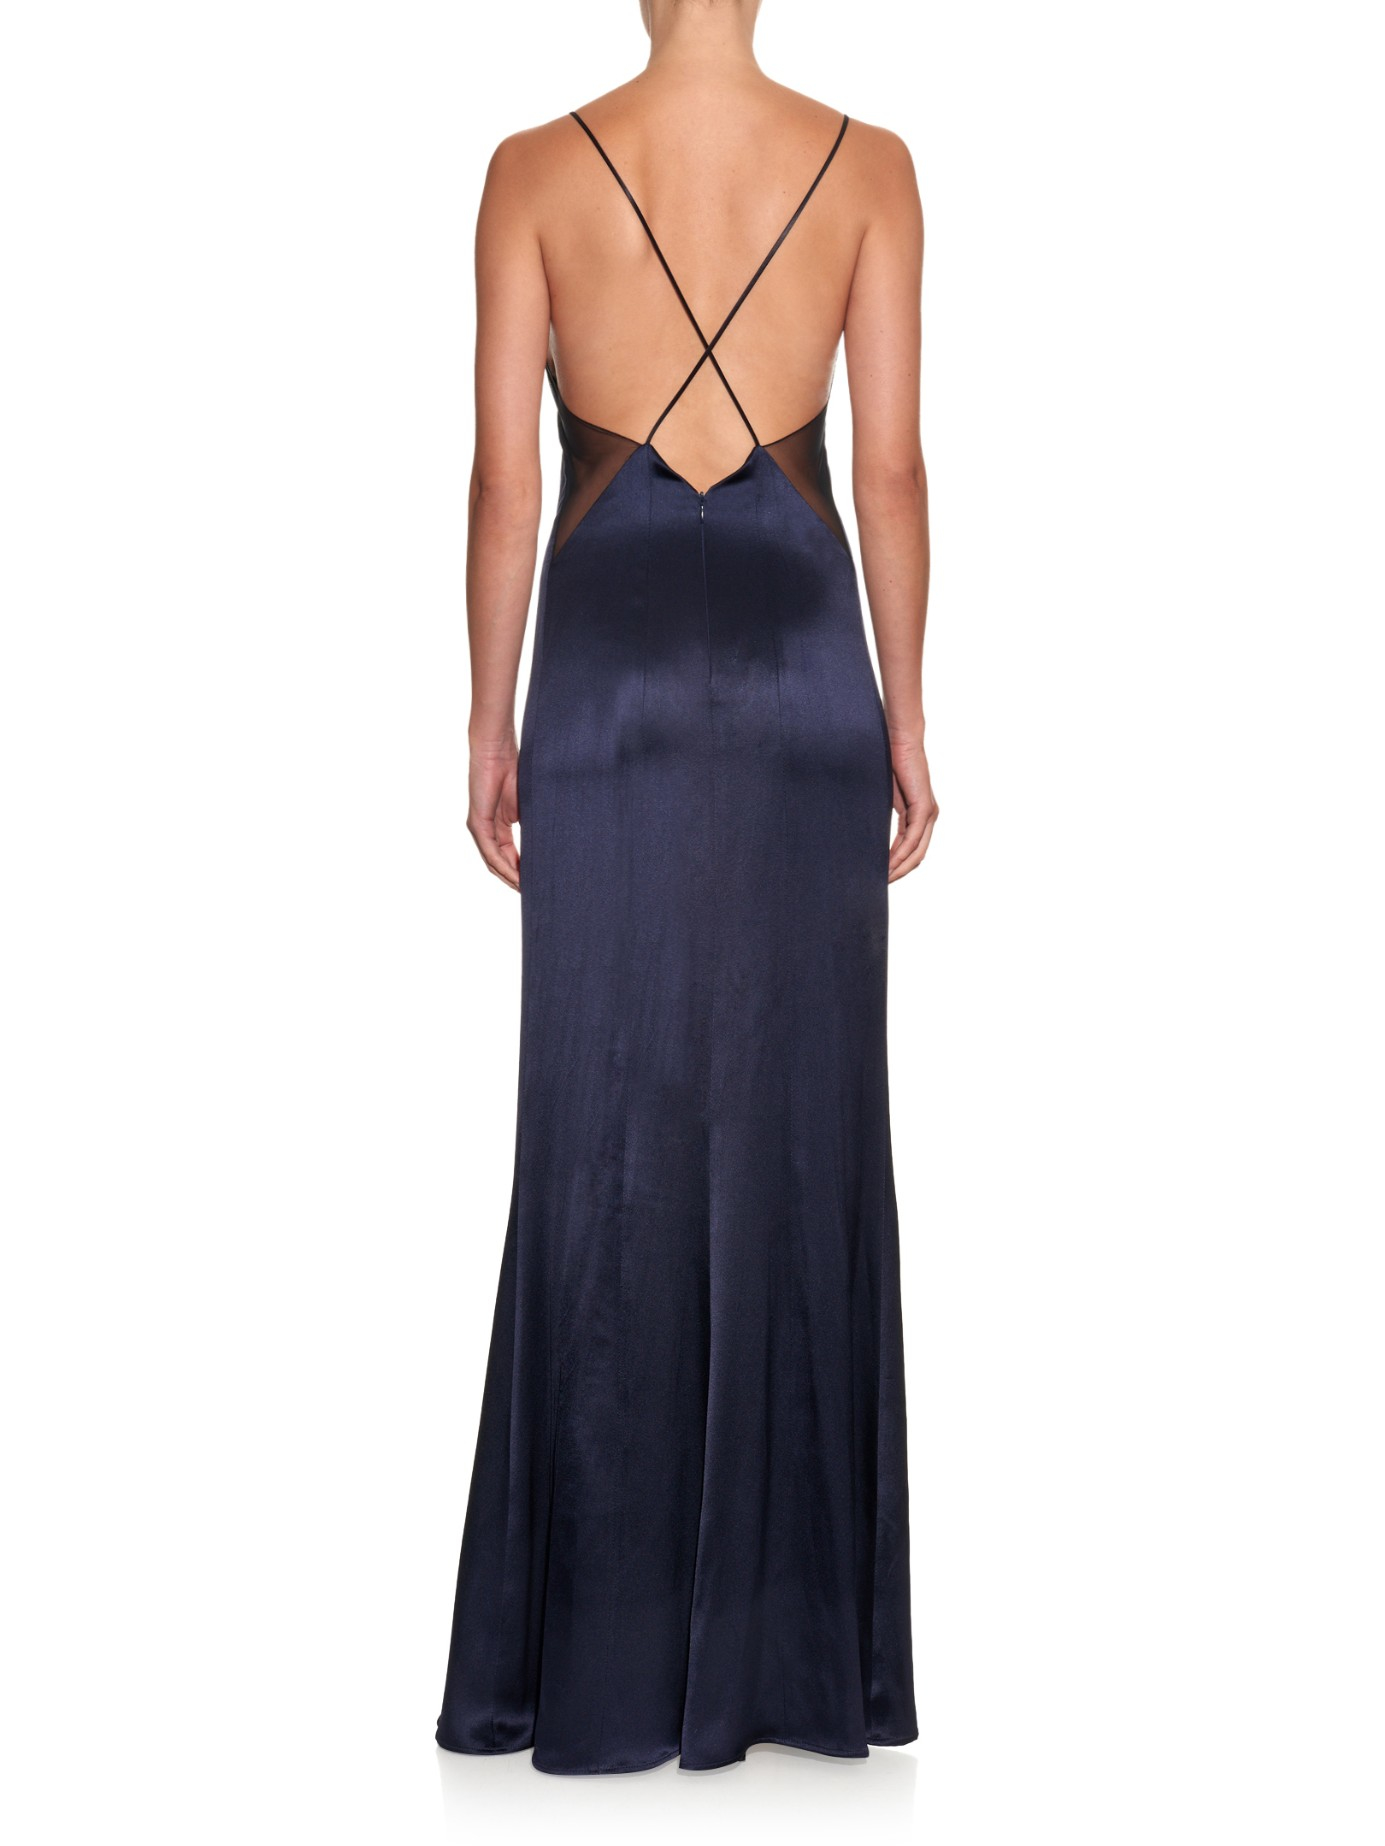 Lyst - Galvan London Mesh-panel Open-back Gown in Blue